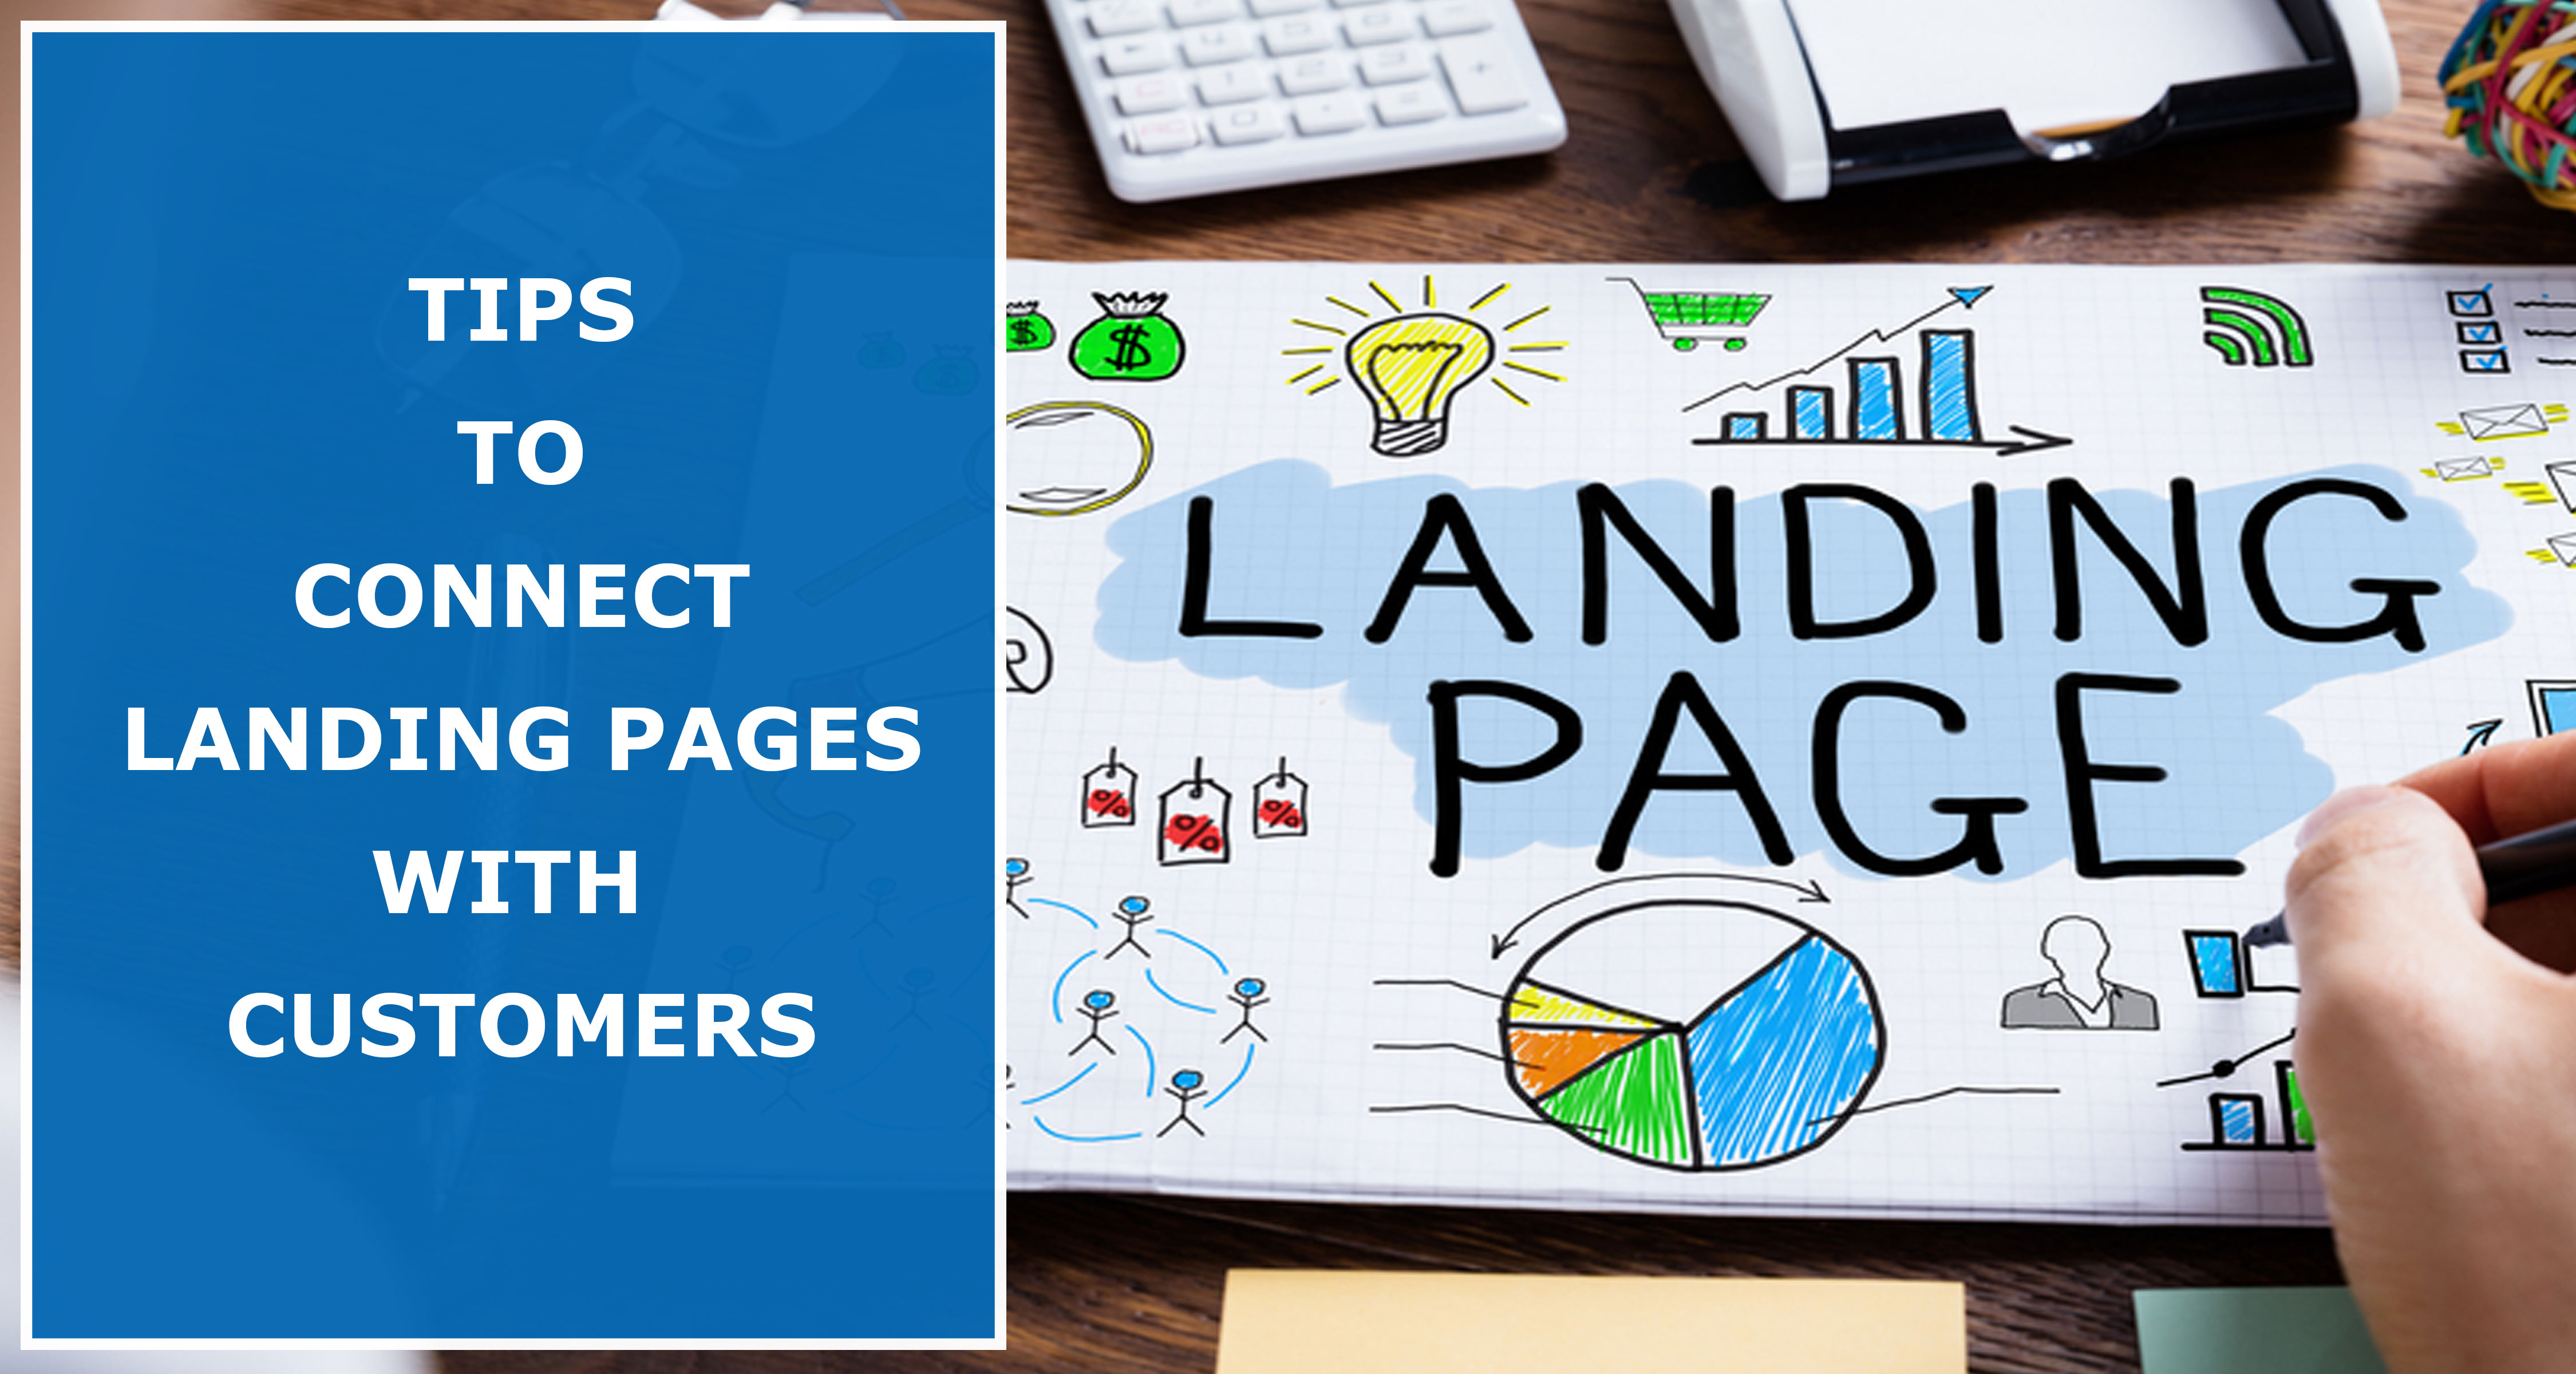 3-Ways-To-Make-Sure-That-Landing-Pages-Connect-With-Your-Visitors